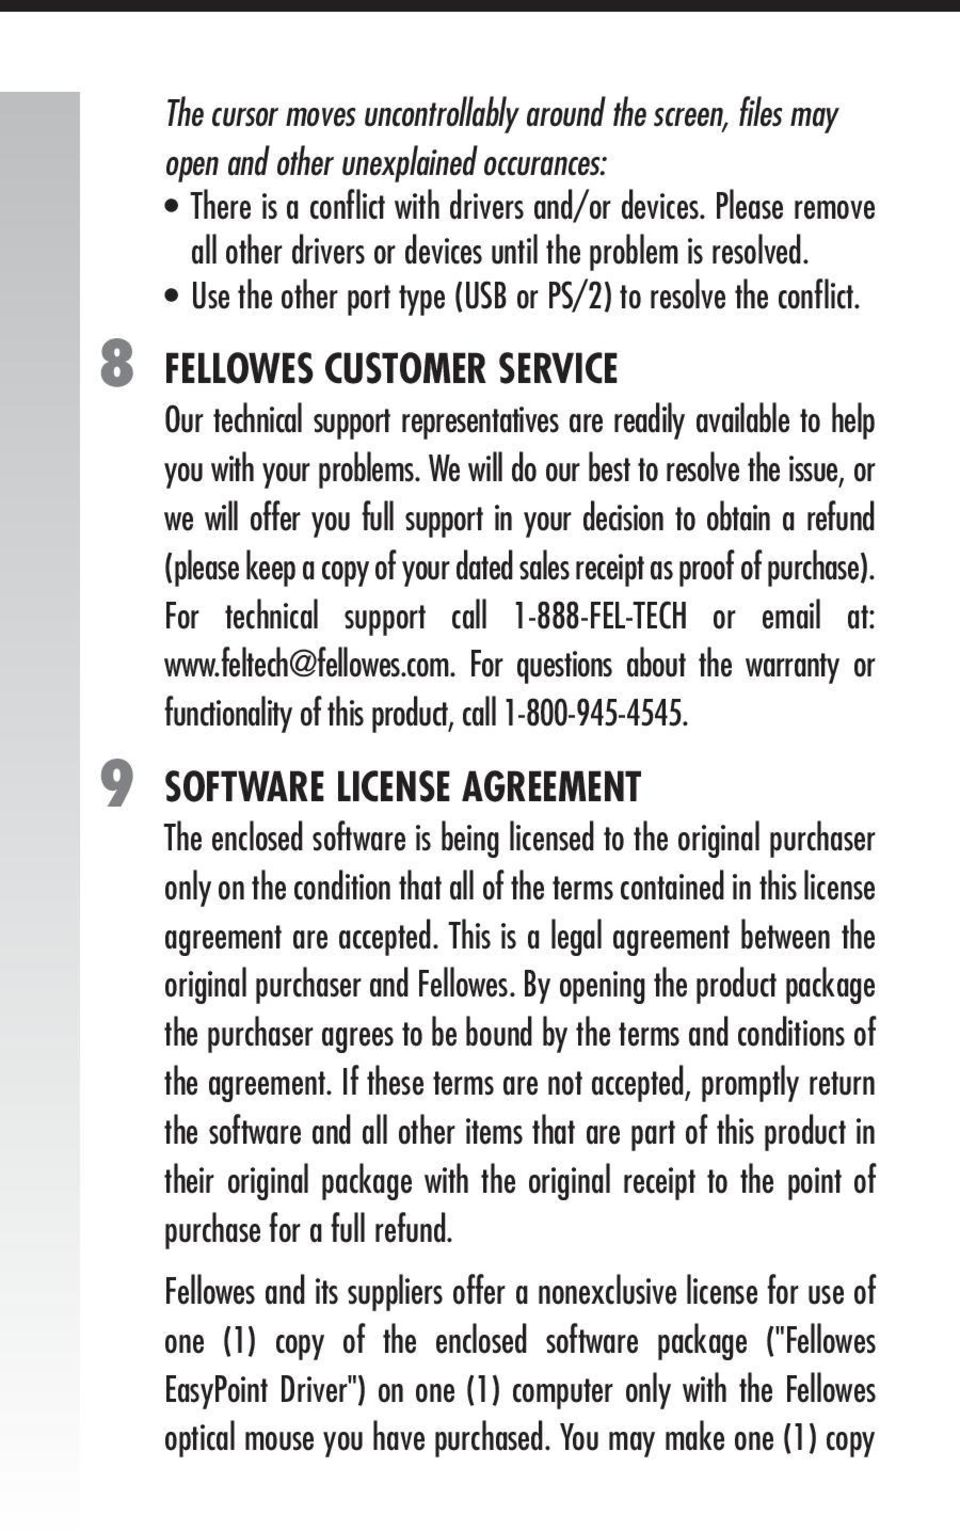 FELLOWES CUSTOMER SERVICE Our technical support representatives are readily available to help you with your problems.